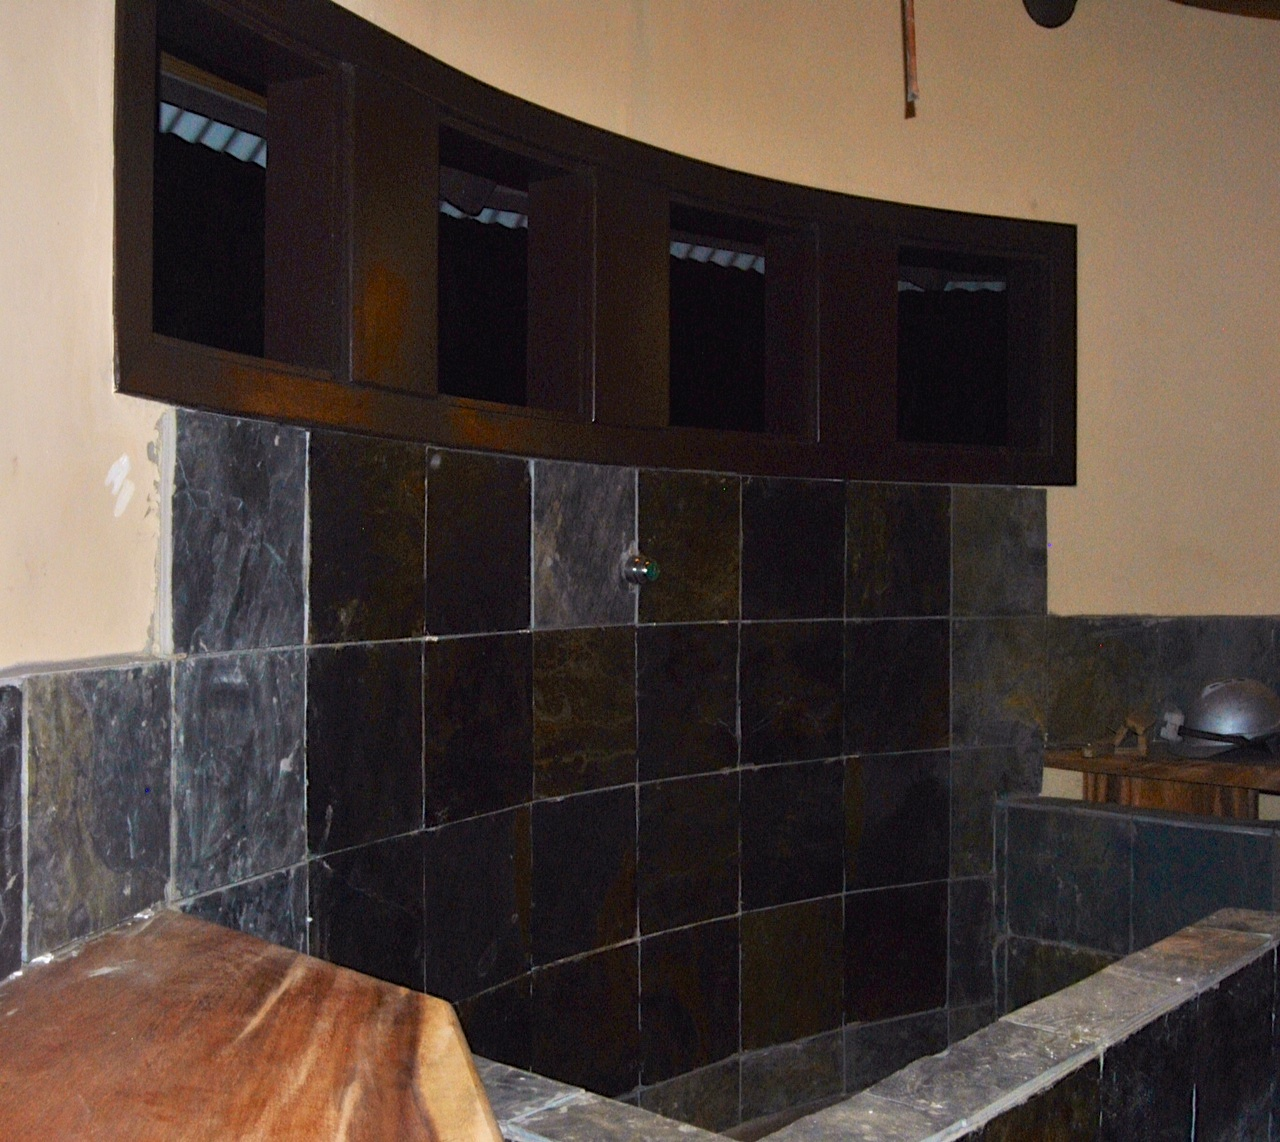 In the bathrooms, they are beginning to seal the tile in the showers. Love the contrast between the tile, walls, and wood!